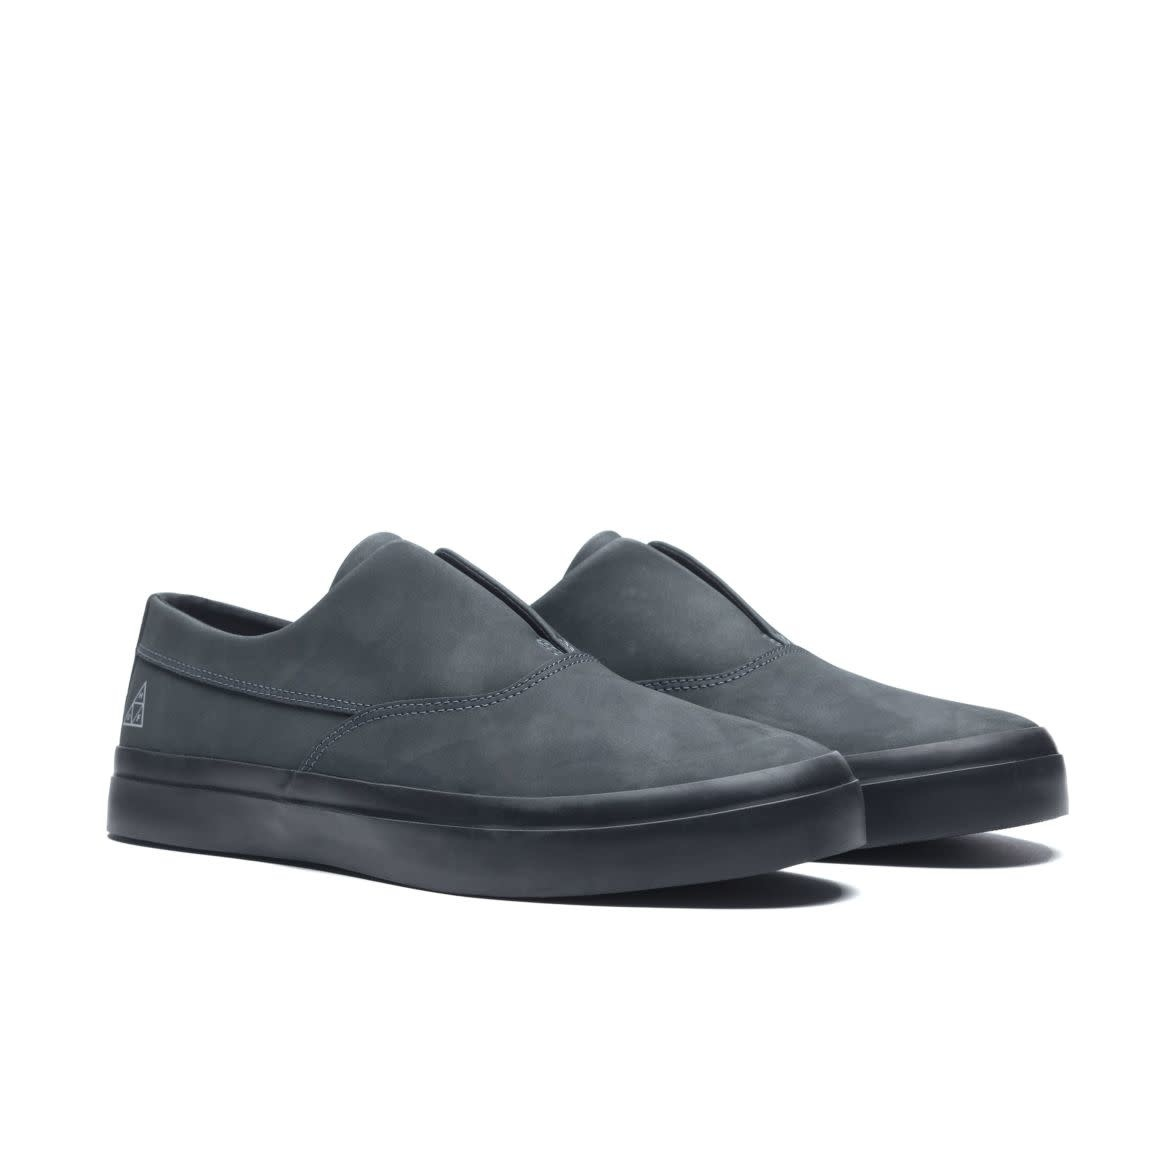 HUF Dylan Slip On Black Leather/Black